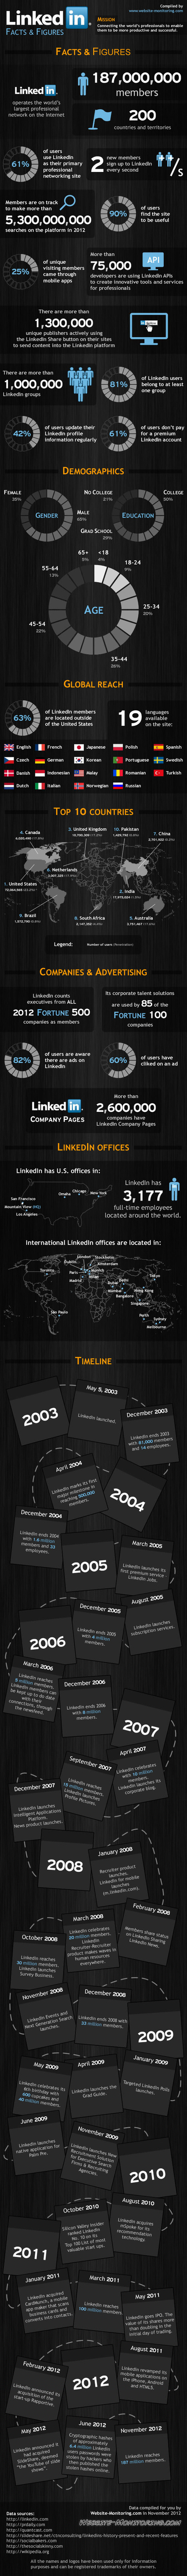 infografia-linkedin-datos.jpg (580x8000 pixels) | Going social | Scoop.it